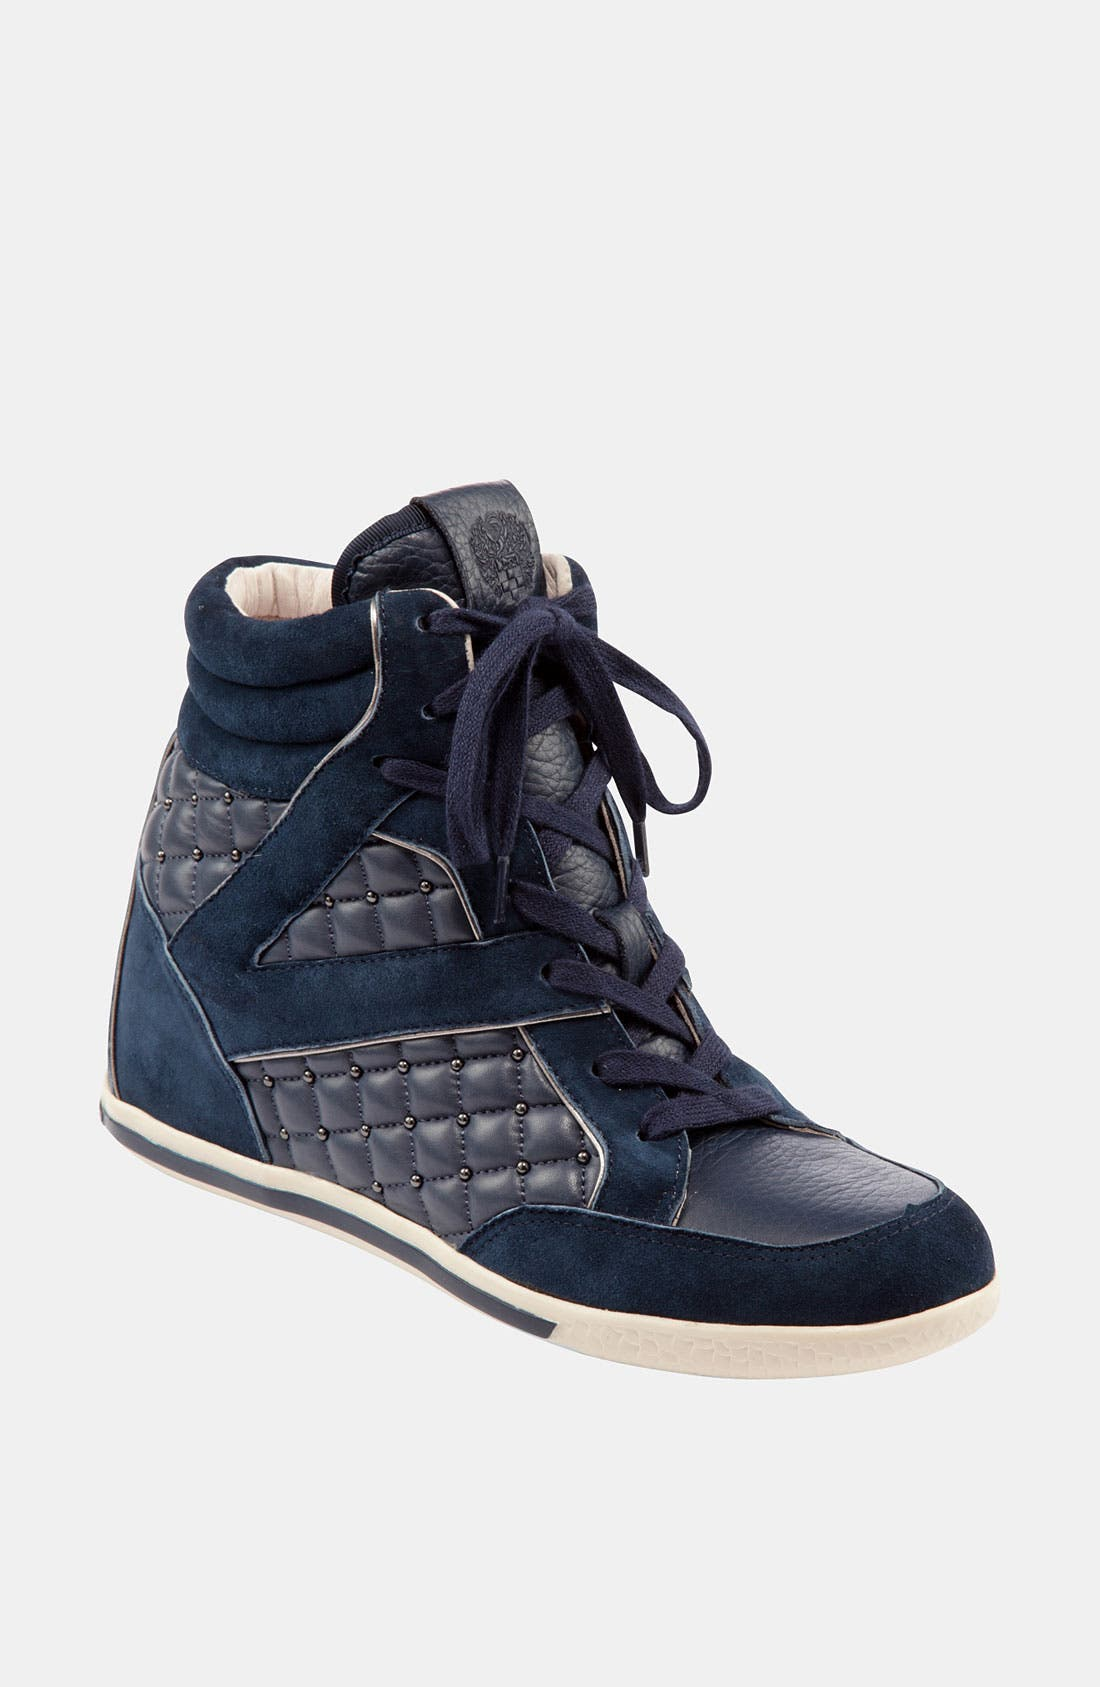 Main Image - Vince Camuto 'Follie' Sneaker